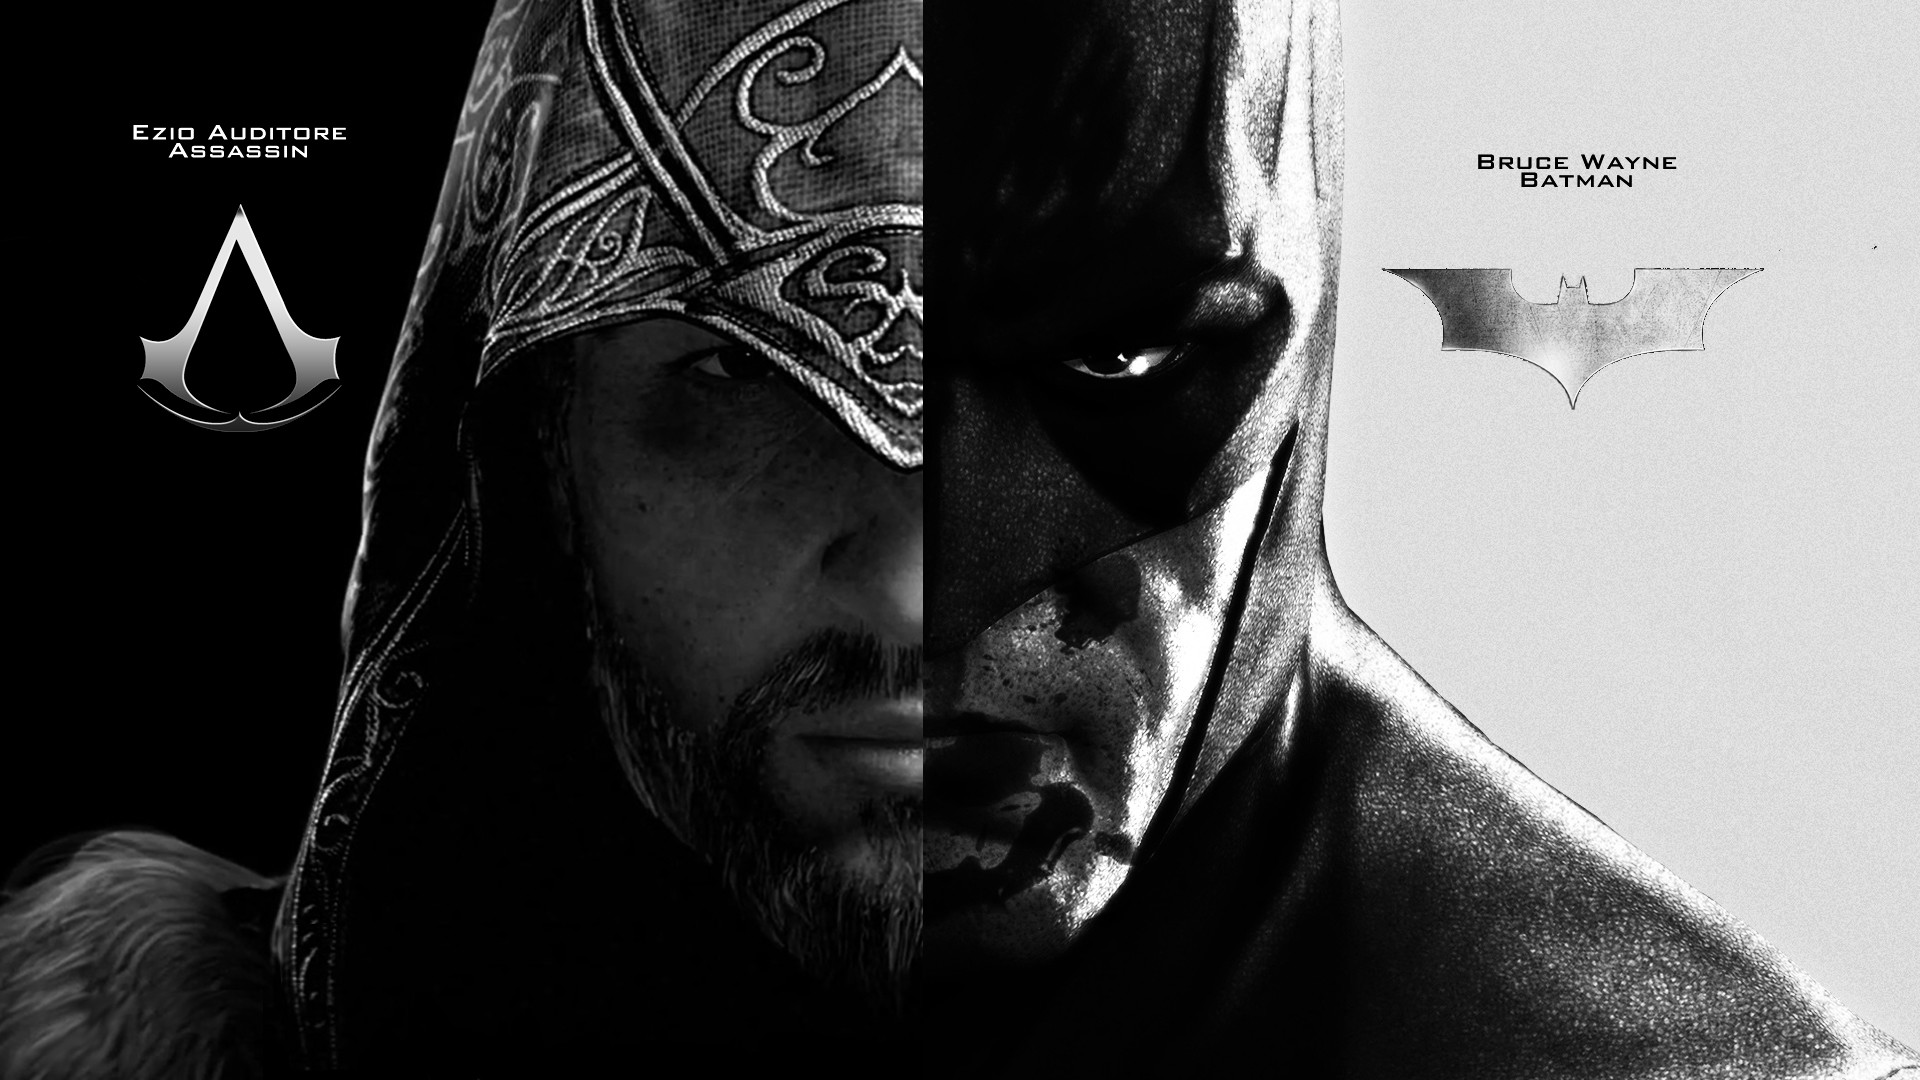 1920x1080 ezio batman wallpaper by cocomonkey18 customization wallpaper other .